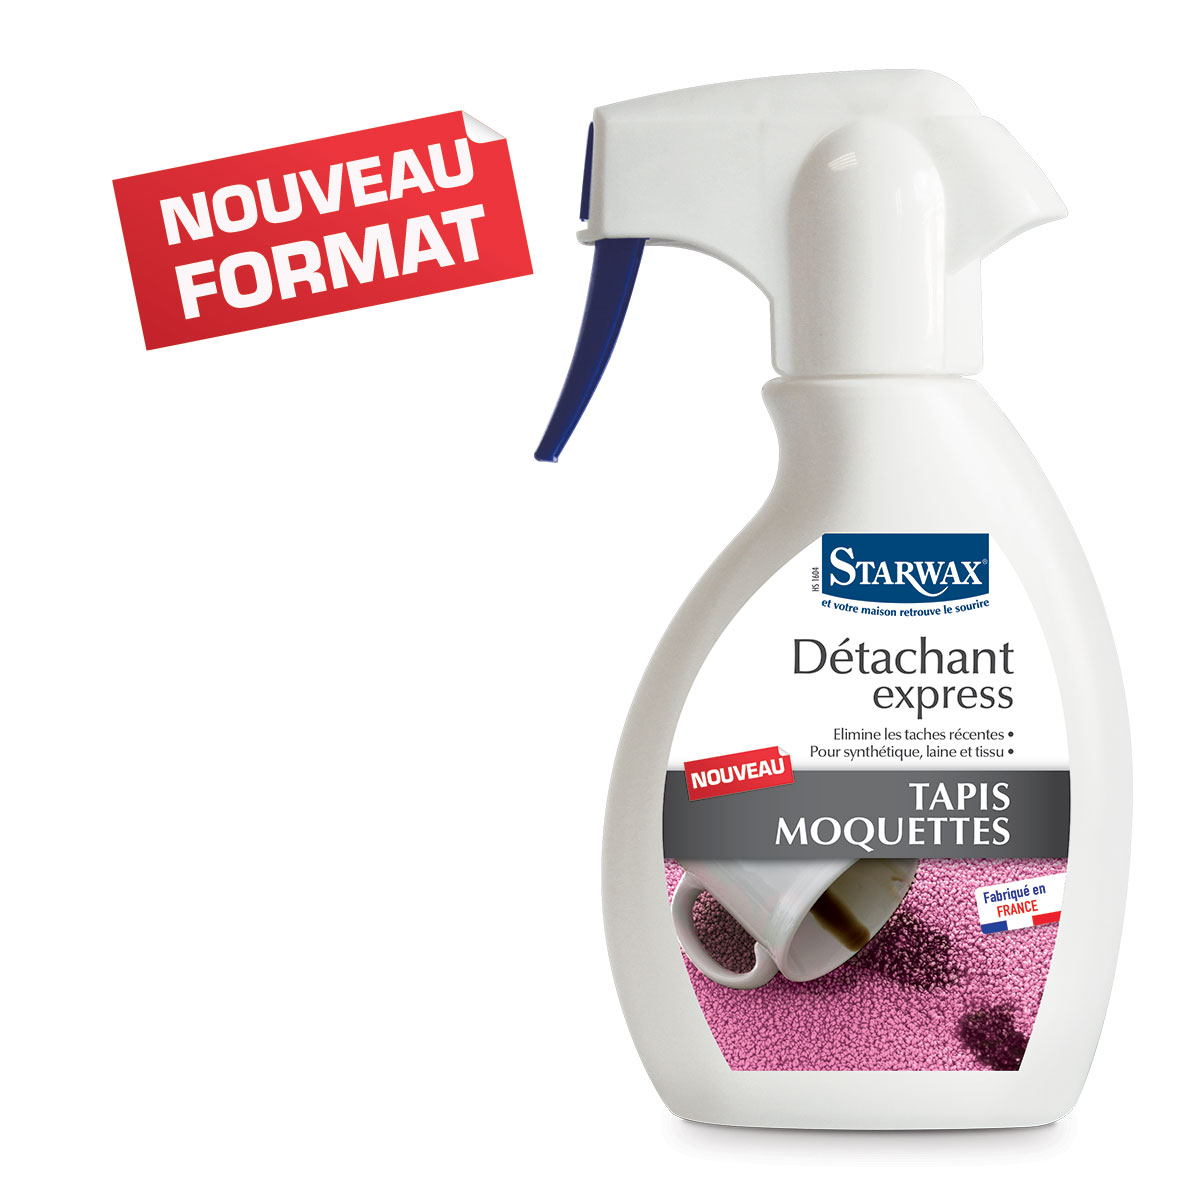 Detachant express tapis moquettes -250ml- Starwax